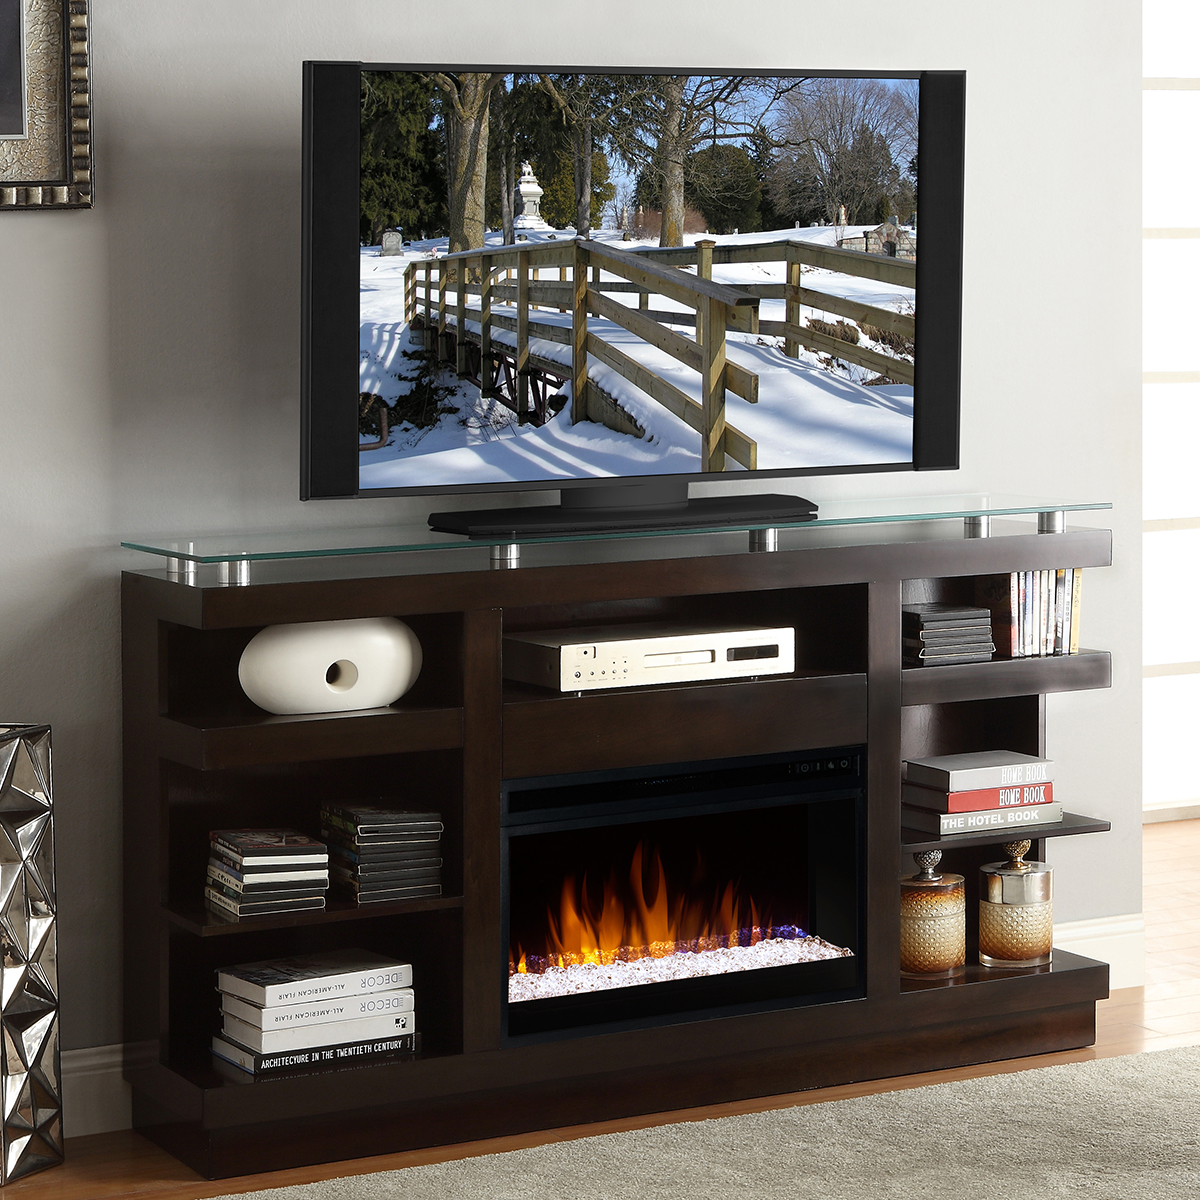 Harlan Grand Electric Fireplace Awesome Fireplaces Portable Electric & Gel Fuel Fireplaces